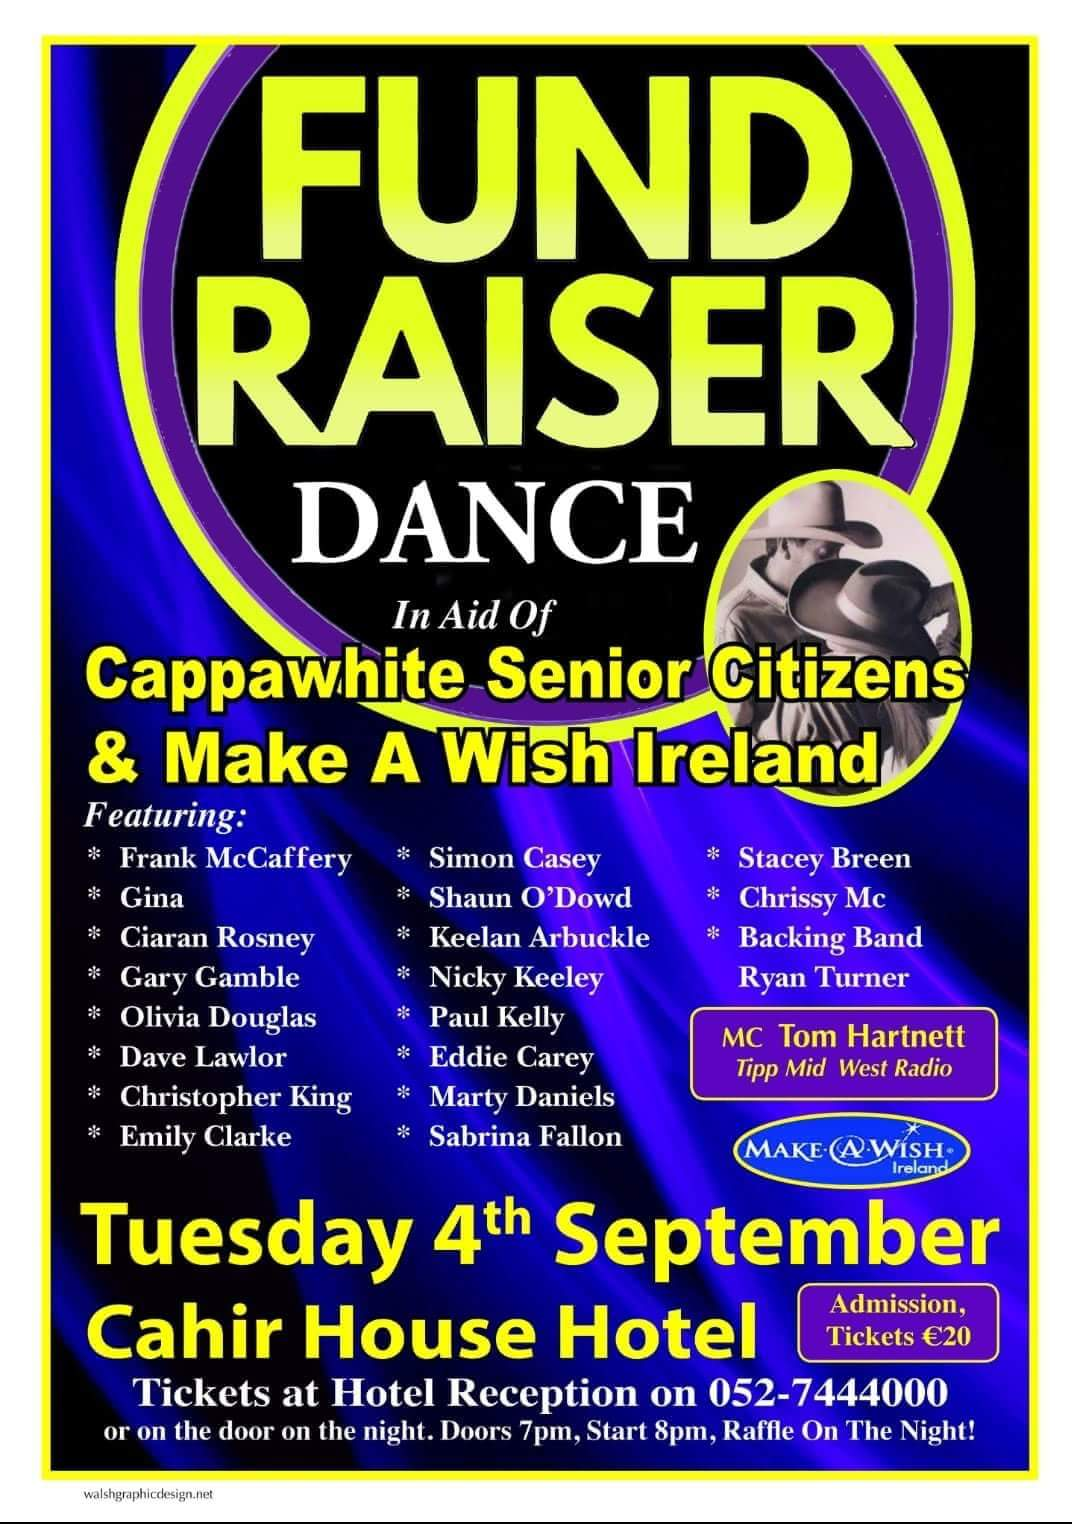 Fundraiser dance in aid of Cappawhite Senior Citizens & Make a Wish Ireland Sept 4th